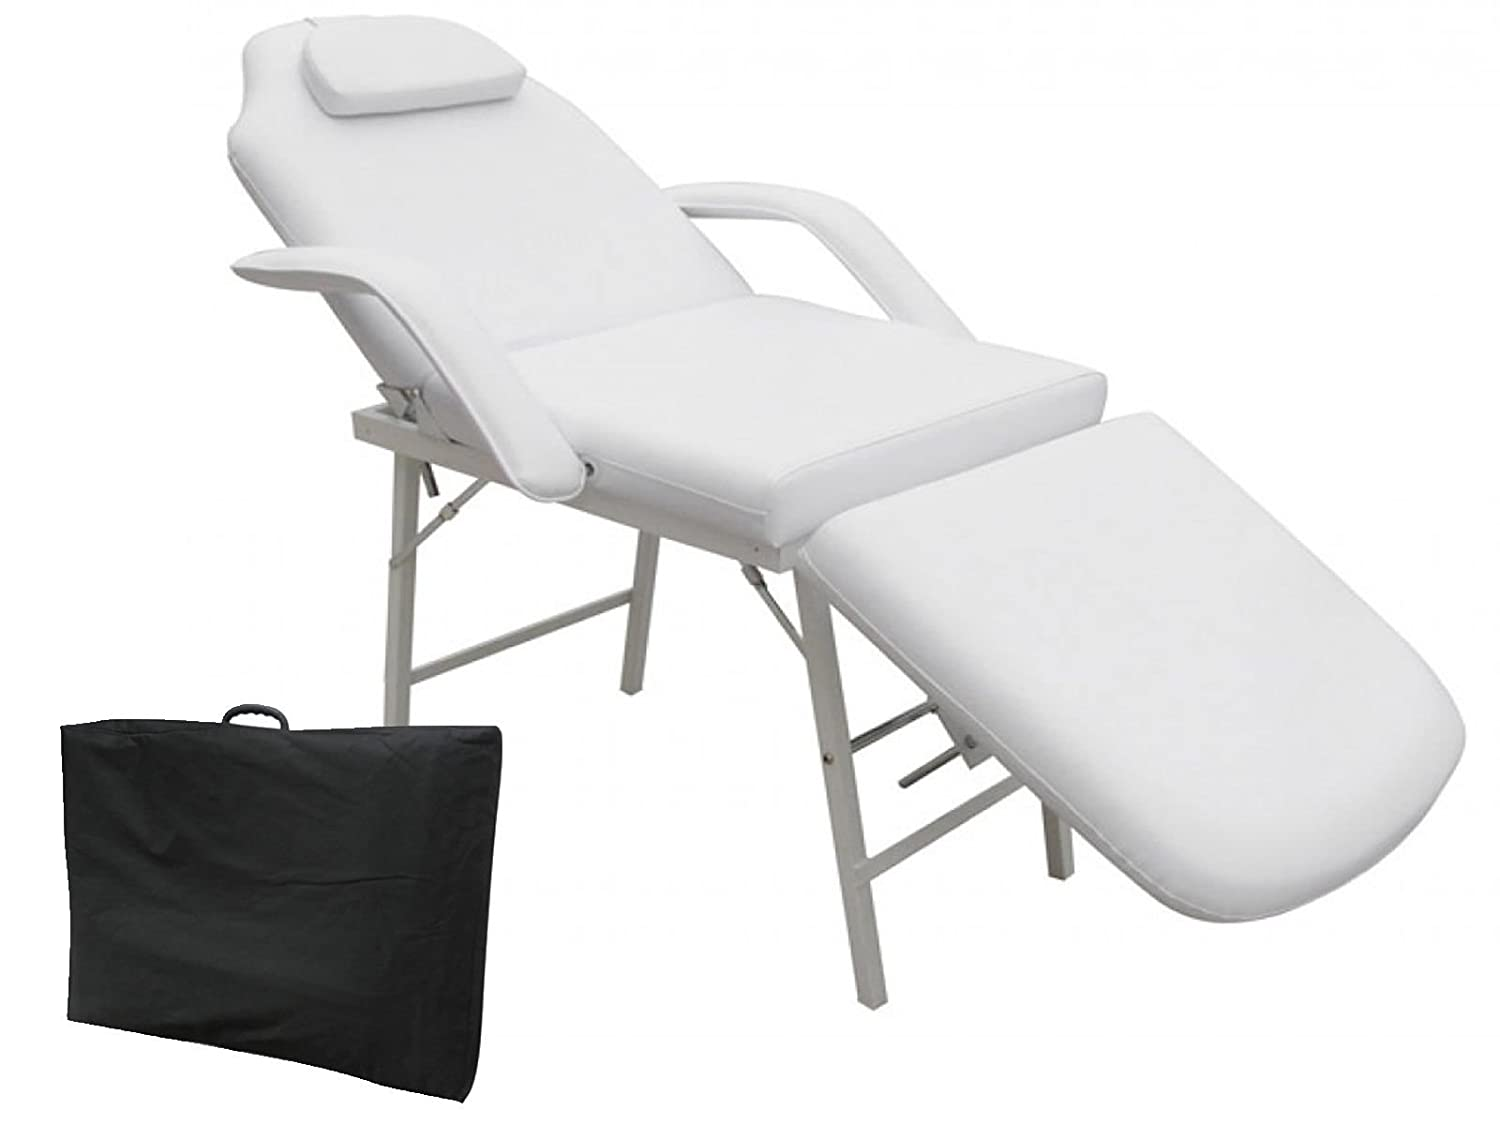 Amazon.com 73  Portable Tattoo Parlor Spa Salon Facial Bed Beauty Massage Table Chair White + FREE E-Book Kitchen u0026 Dining  sc 1 st  Amazon.com & Amazon.com: 73